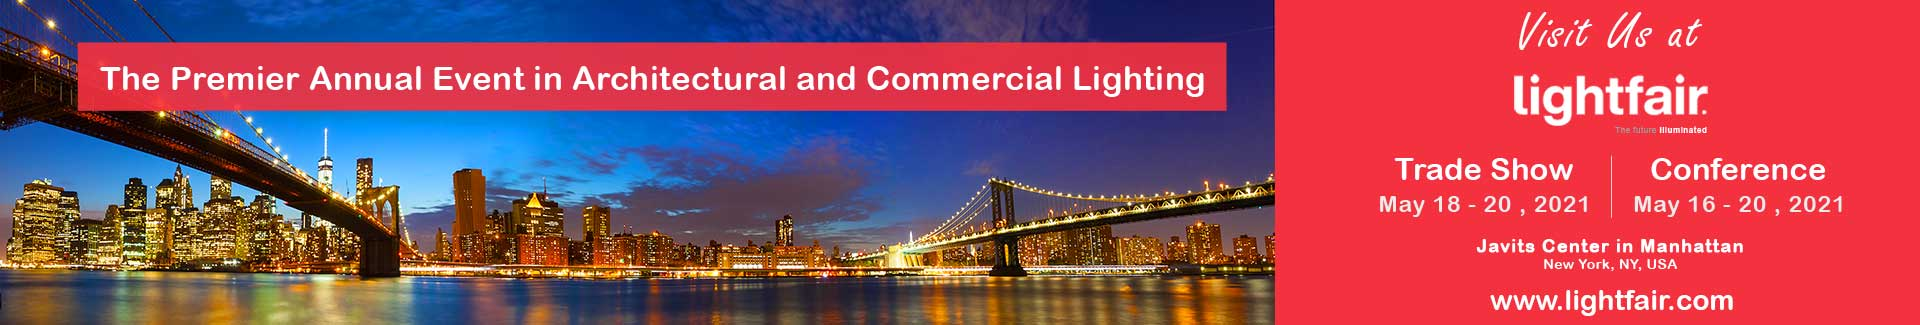 LightFair 2021 in Manhattan, New York - The Premier Annual Event in Architectural and Commercial Lighting.